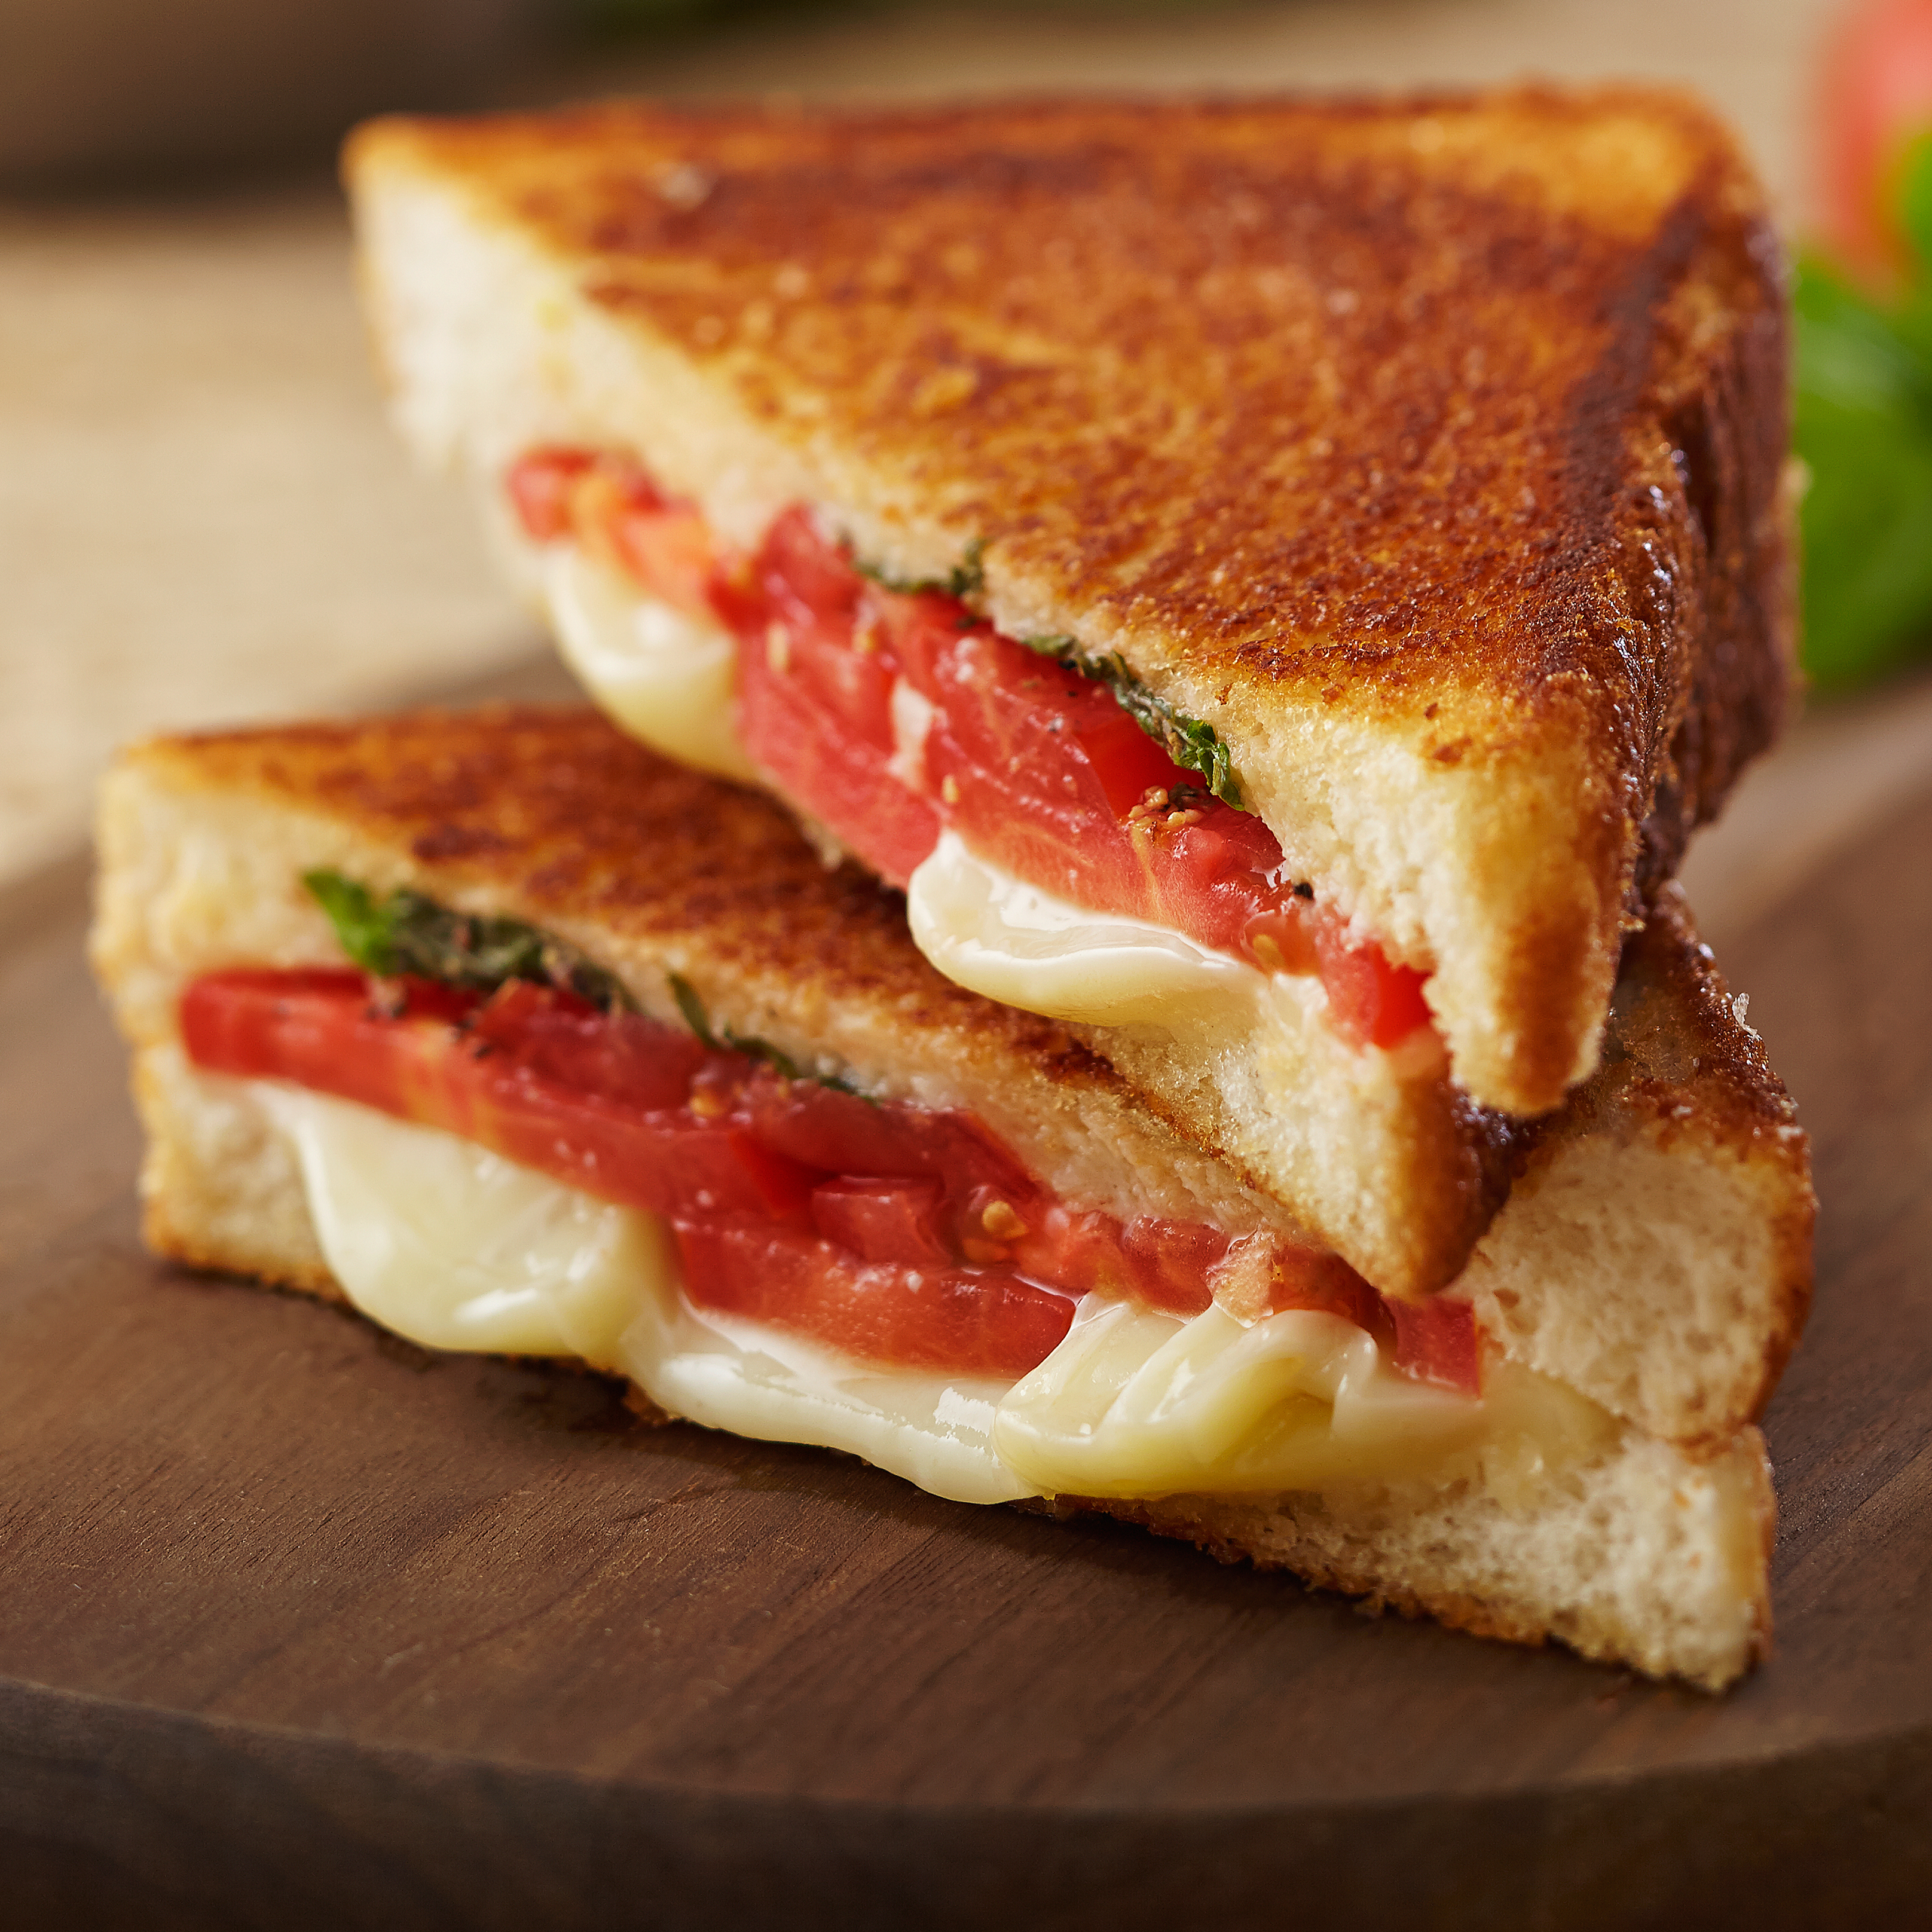 Grilled Cheese with Tomato with Pesto